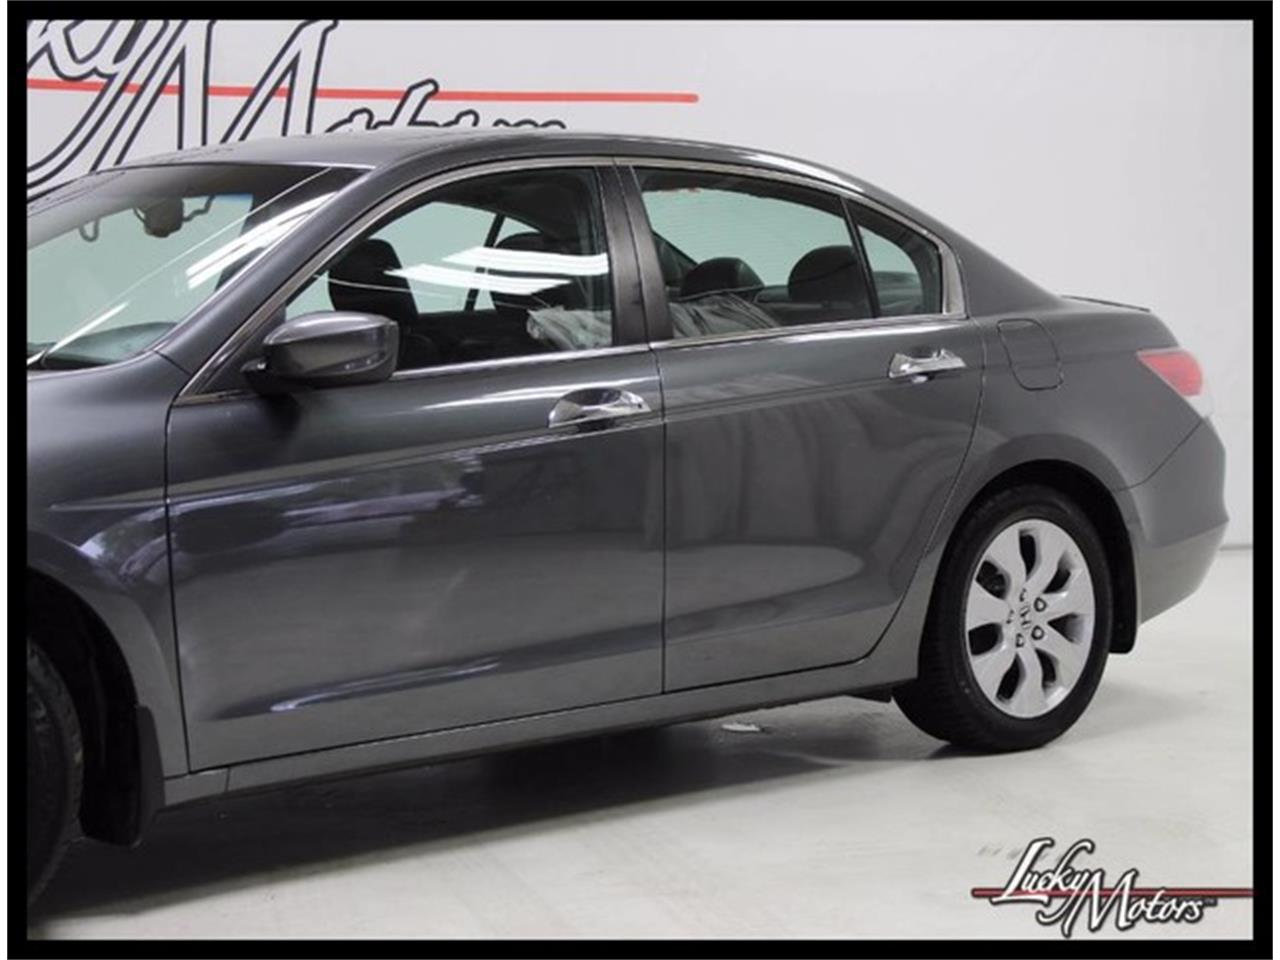 Large Picture of 2010 Honda Accord located in Illinois - $7,990.00 - M4E6